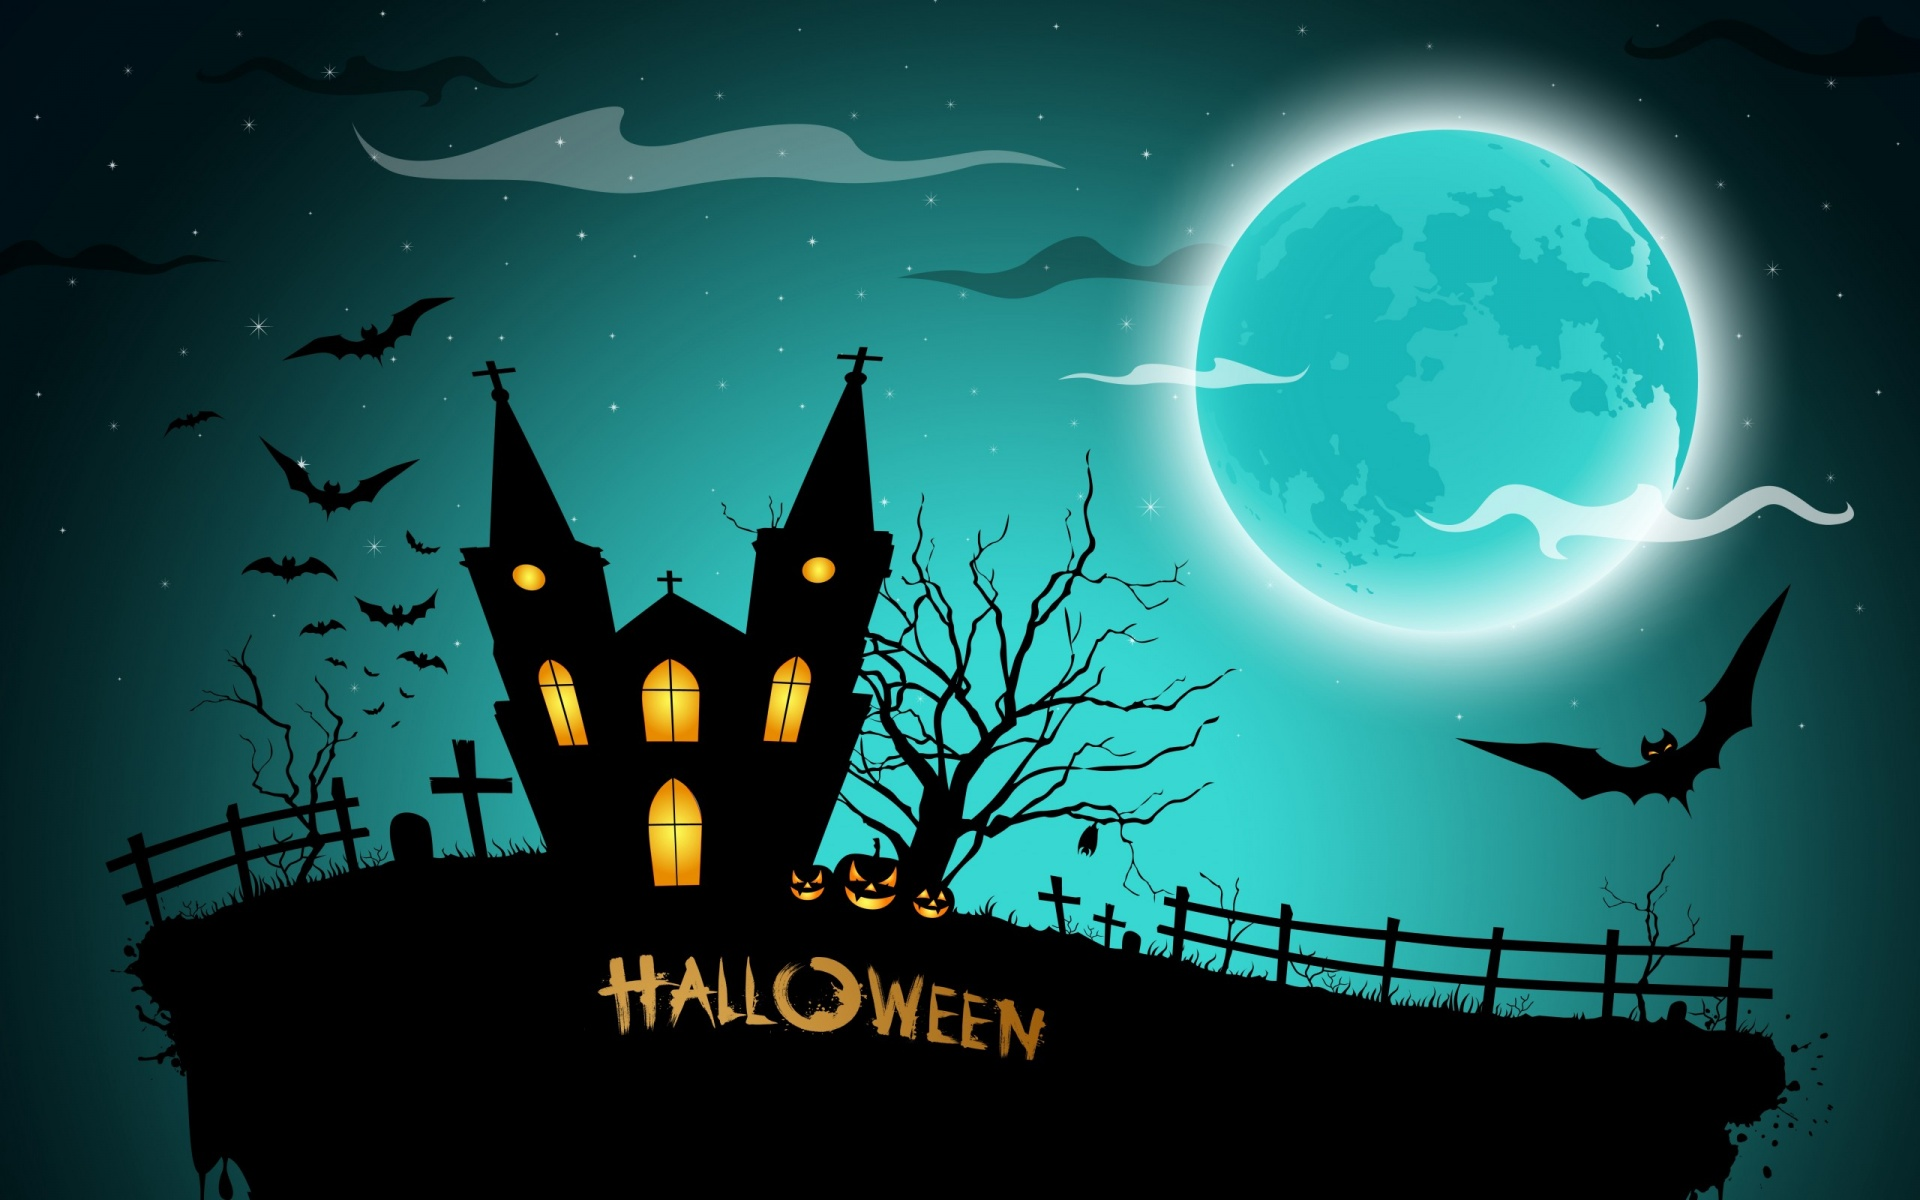 halloween moon wallpaper - photo #24